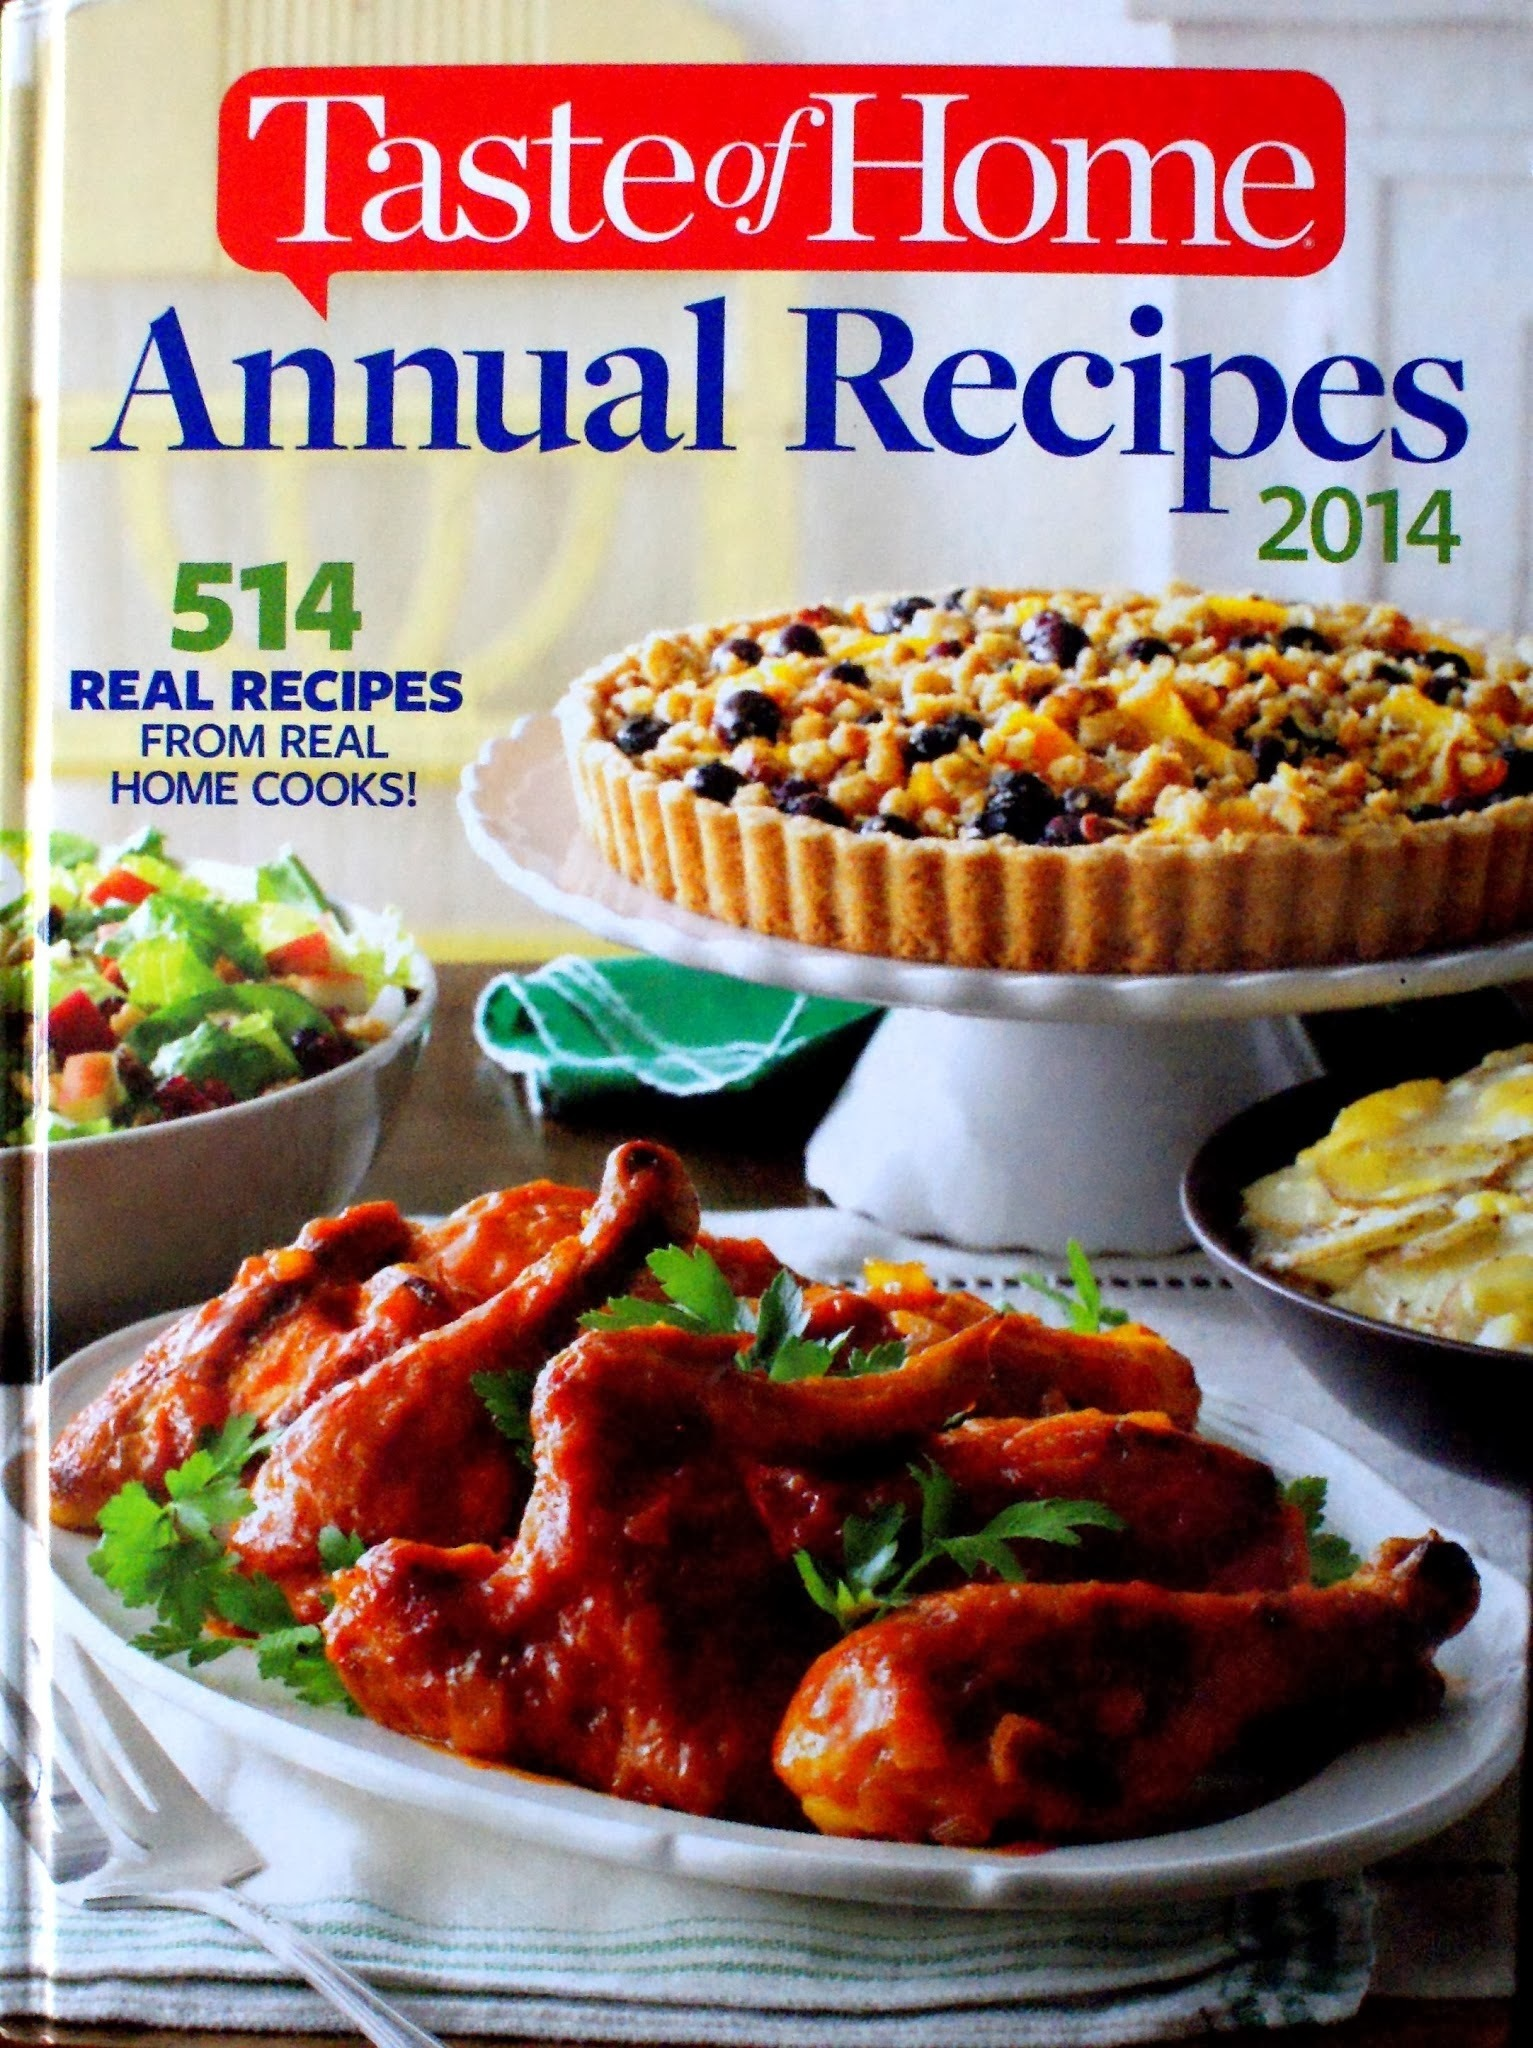 Cookbook Review: 2014 Taste of Home Annual Recipes